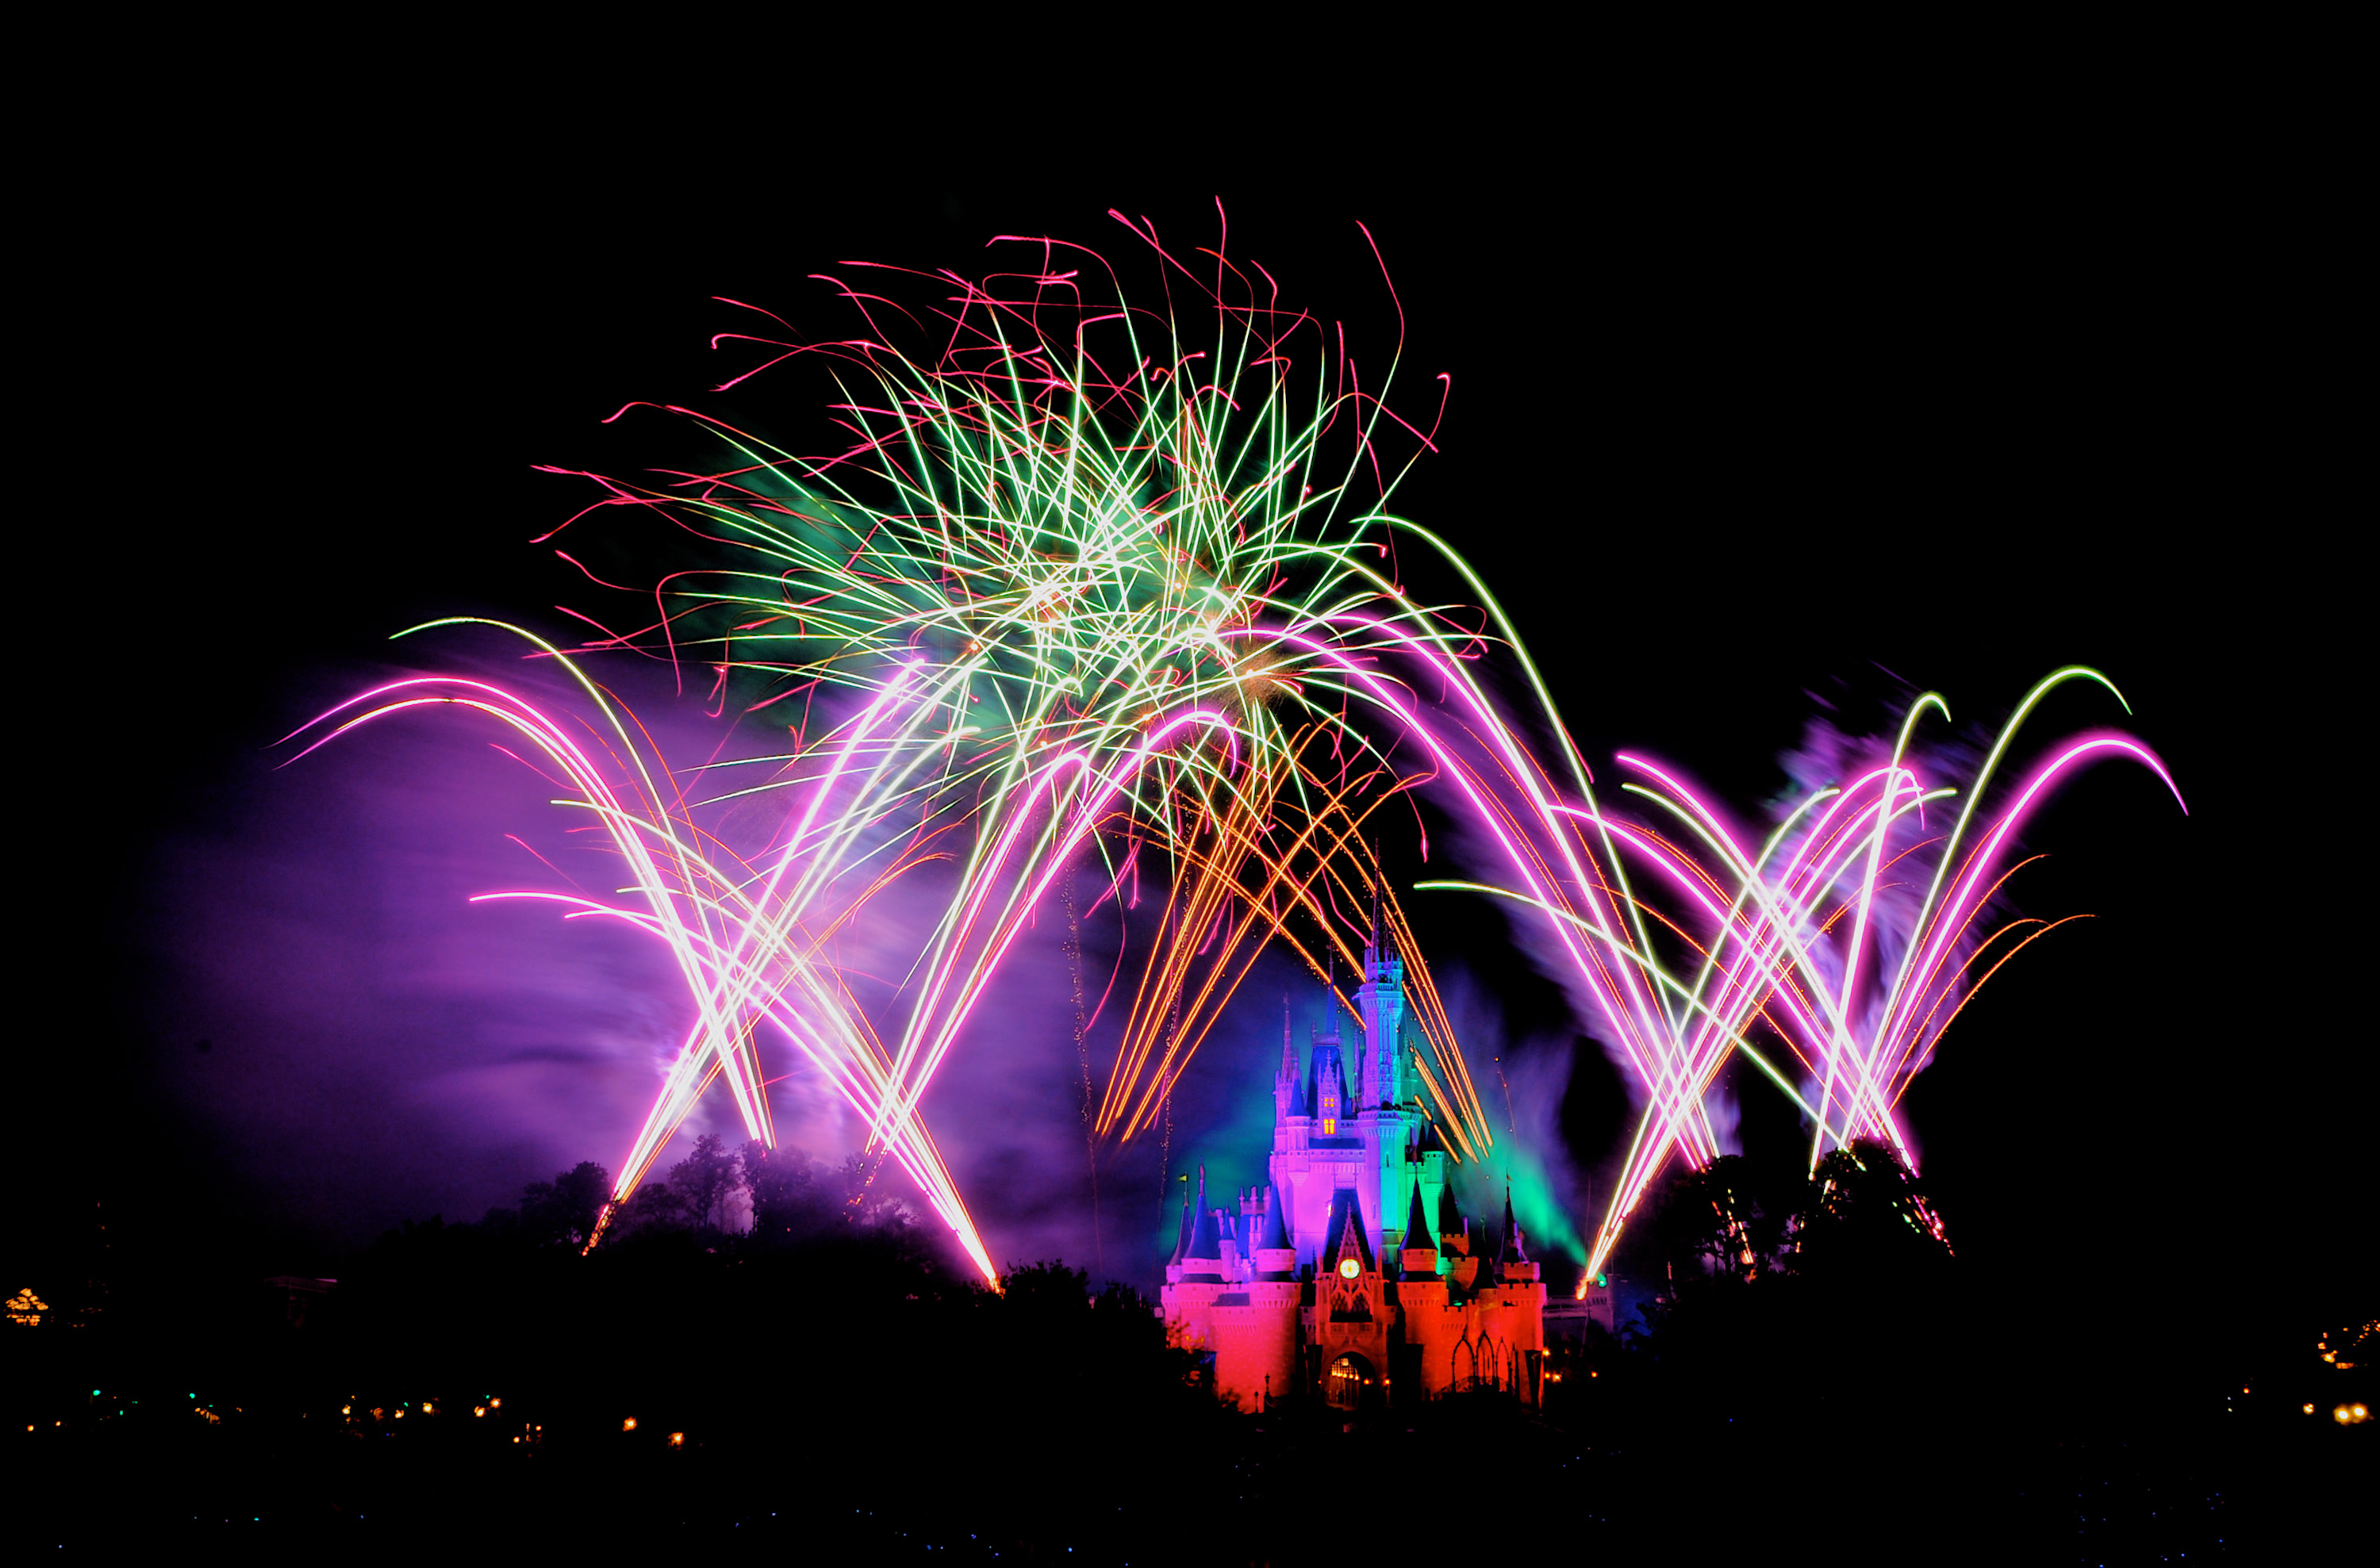 Cinderella Castle with fireworks